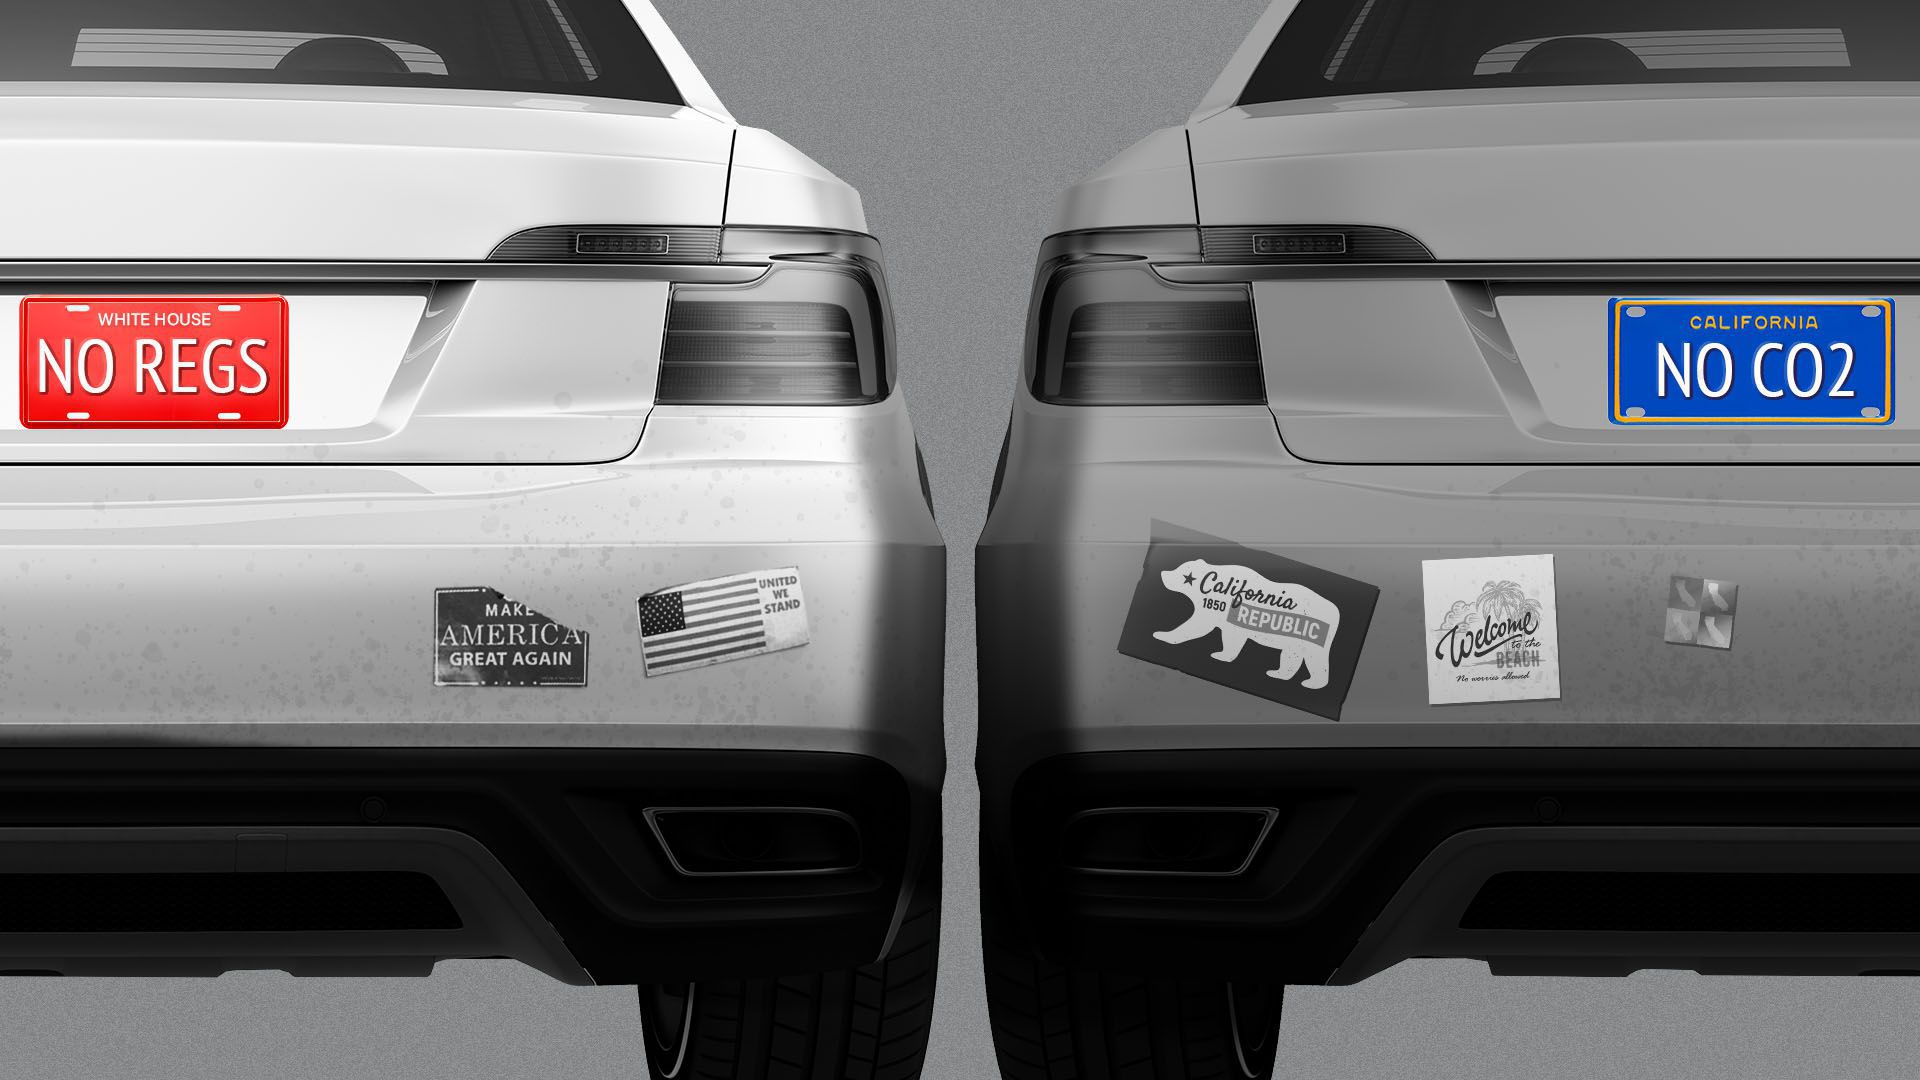 Illustration of cars with competing bumper stickers